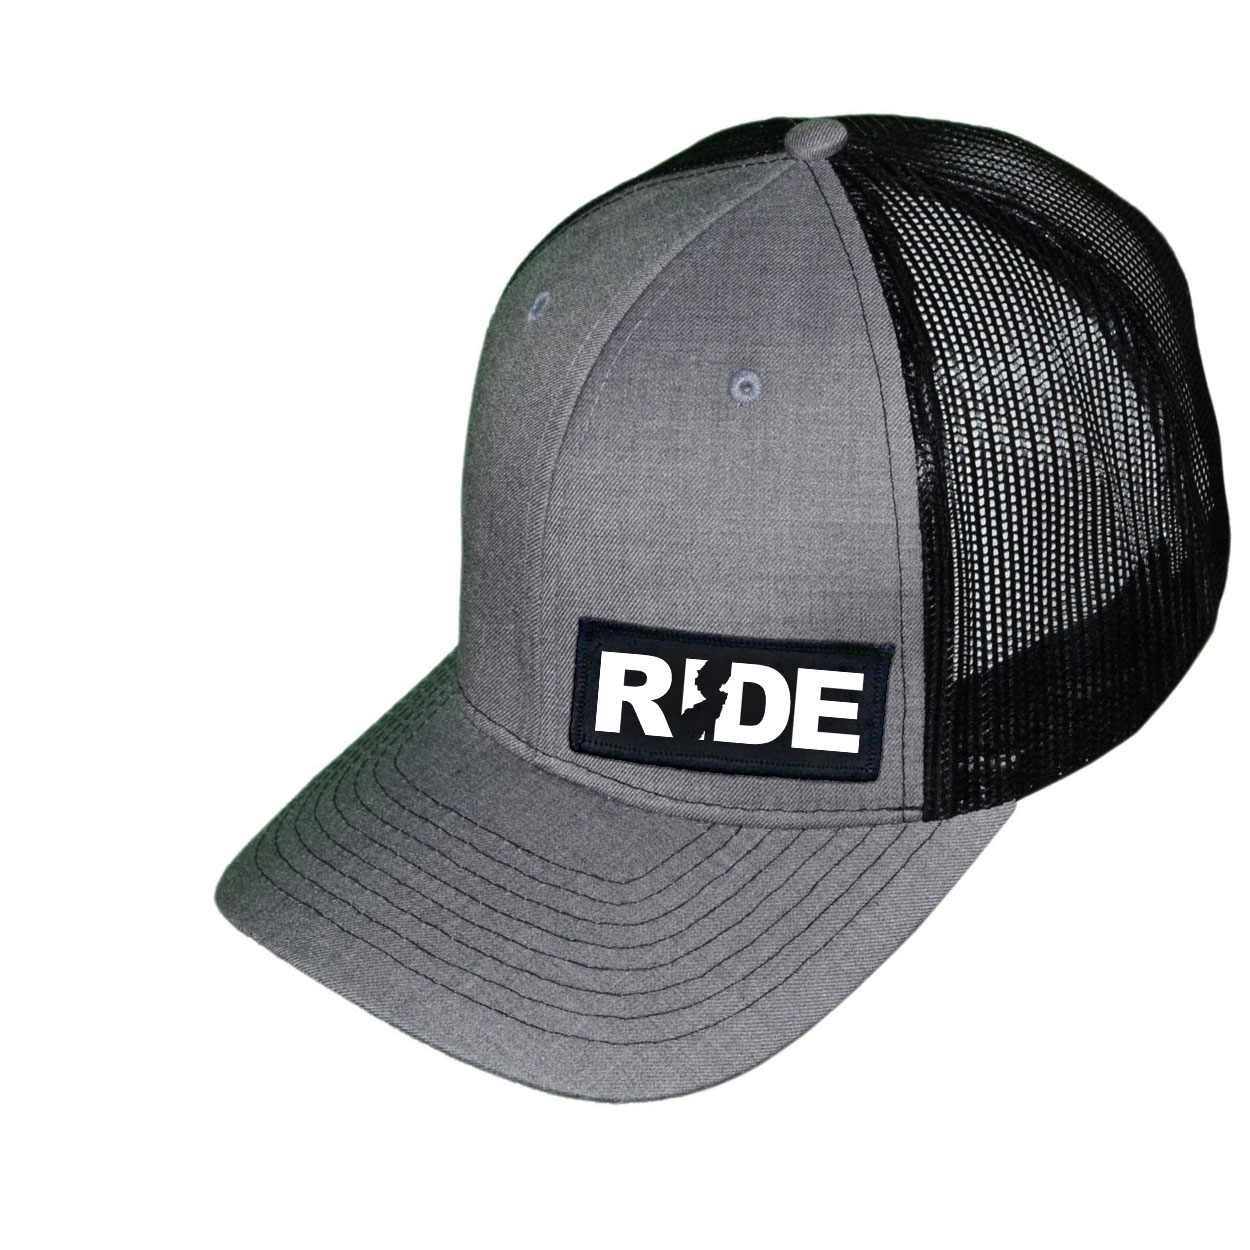 Ride New Jersey Night Out Woven Patch Snapback Trucker Hat Heather Gray/Black (White Logo)